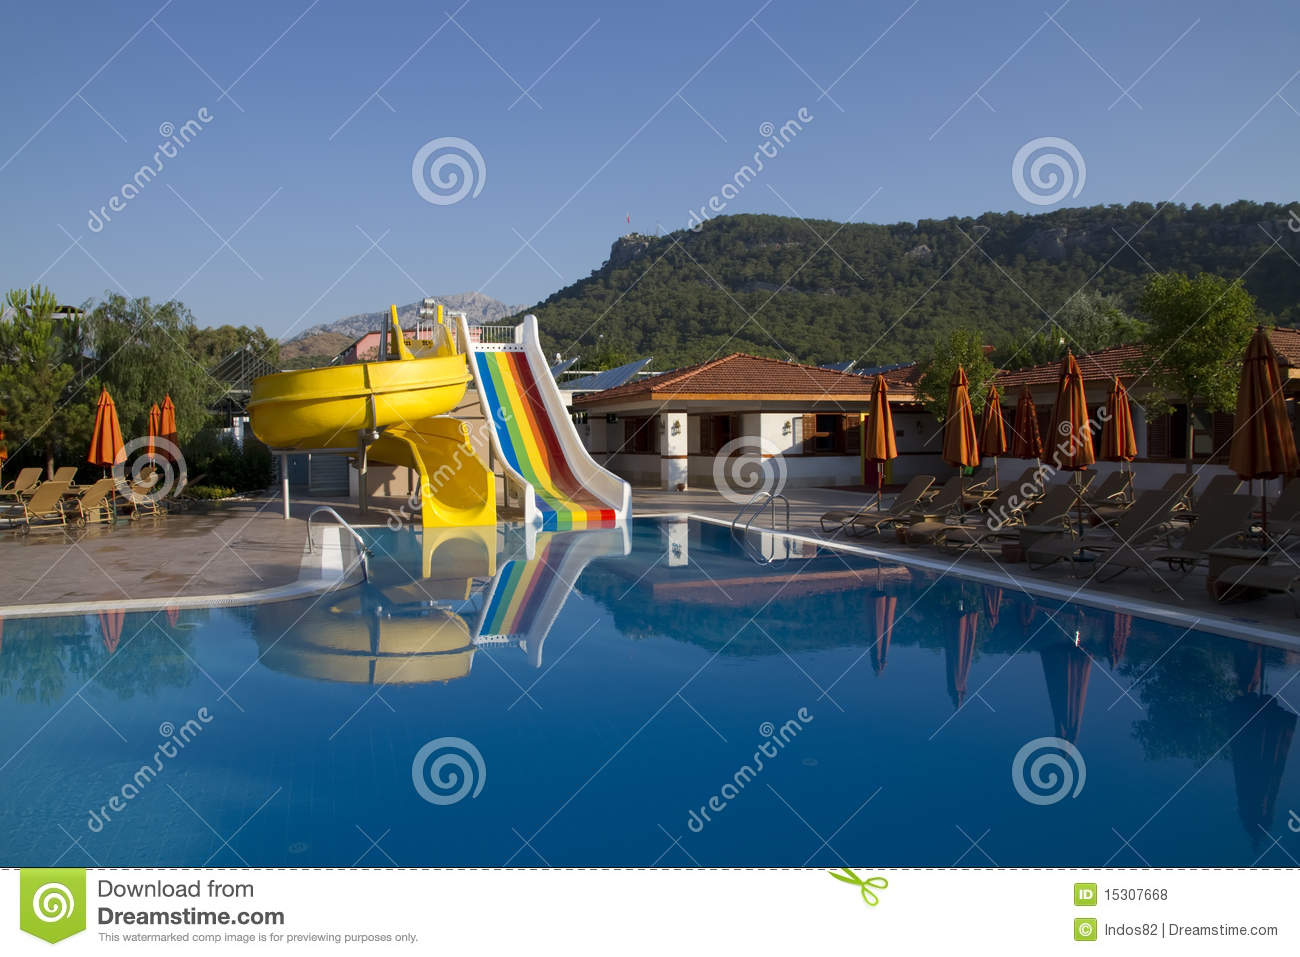 Swimming Pool With Water Slide Stock Photo - Image of holiday, rapid ...